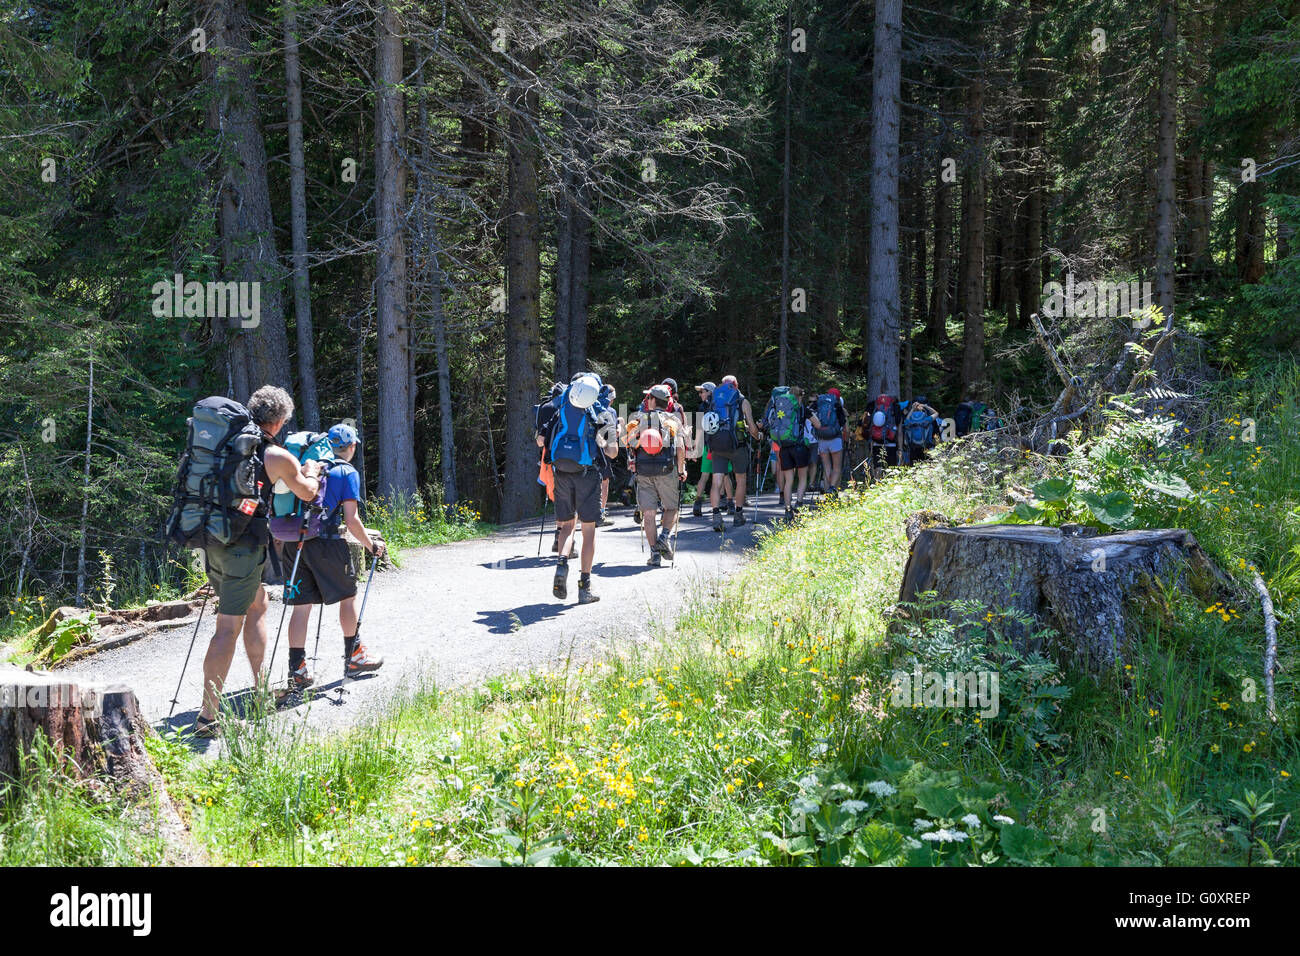 a-party-of-walkers-ramblers-or-hikers-at-the-krimml-waterfalls-austria-G0XREP.jpg